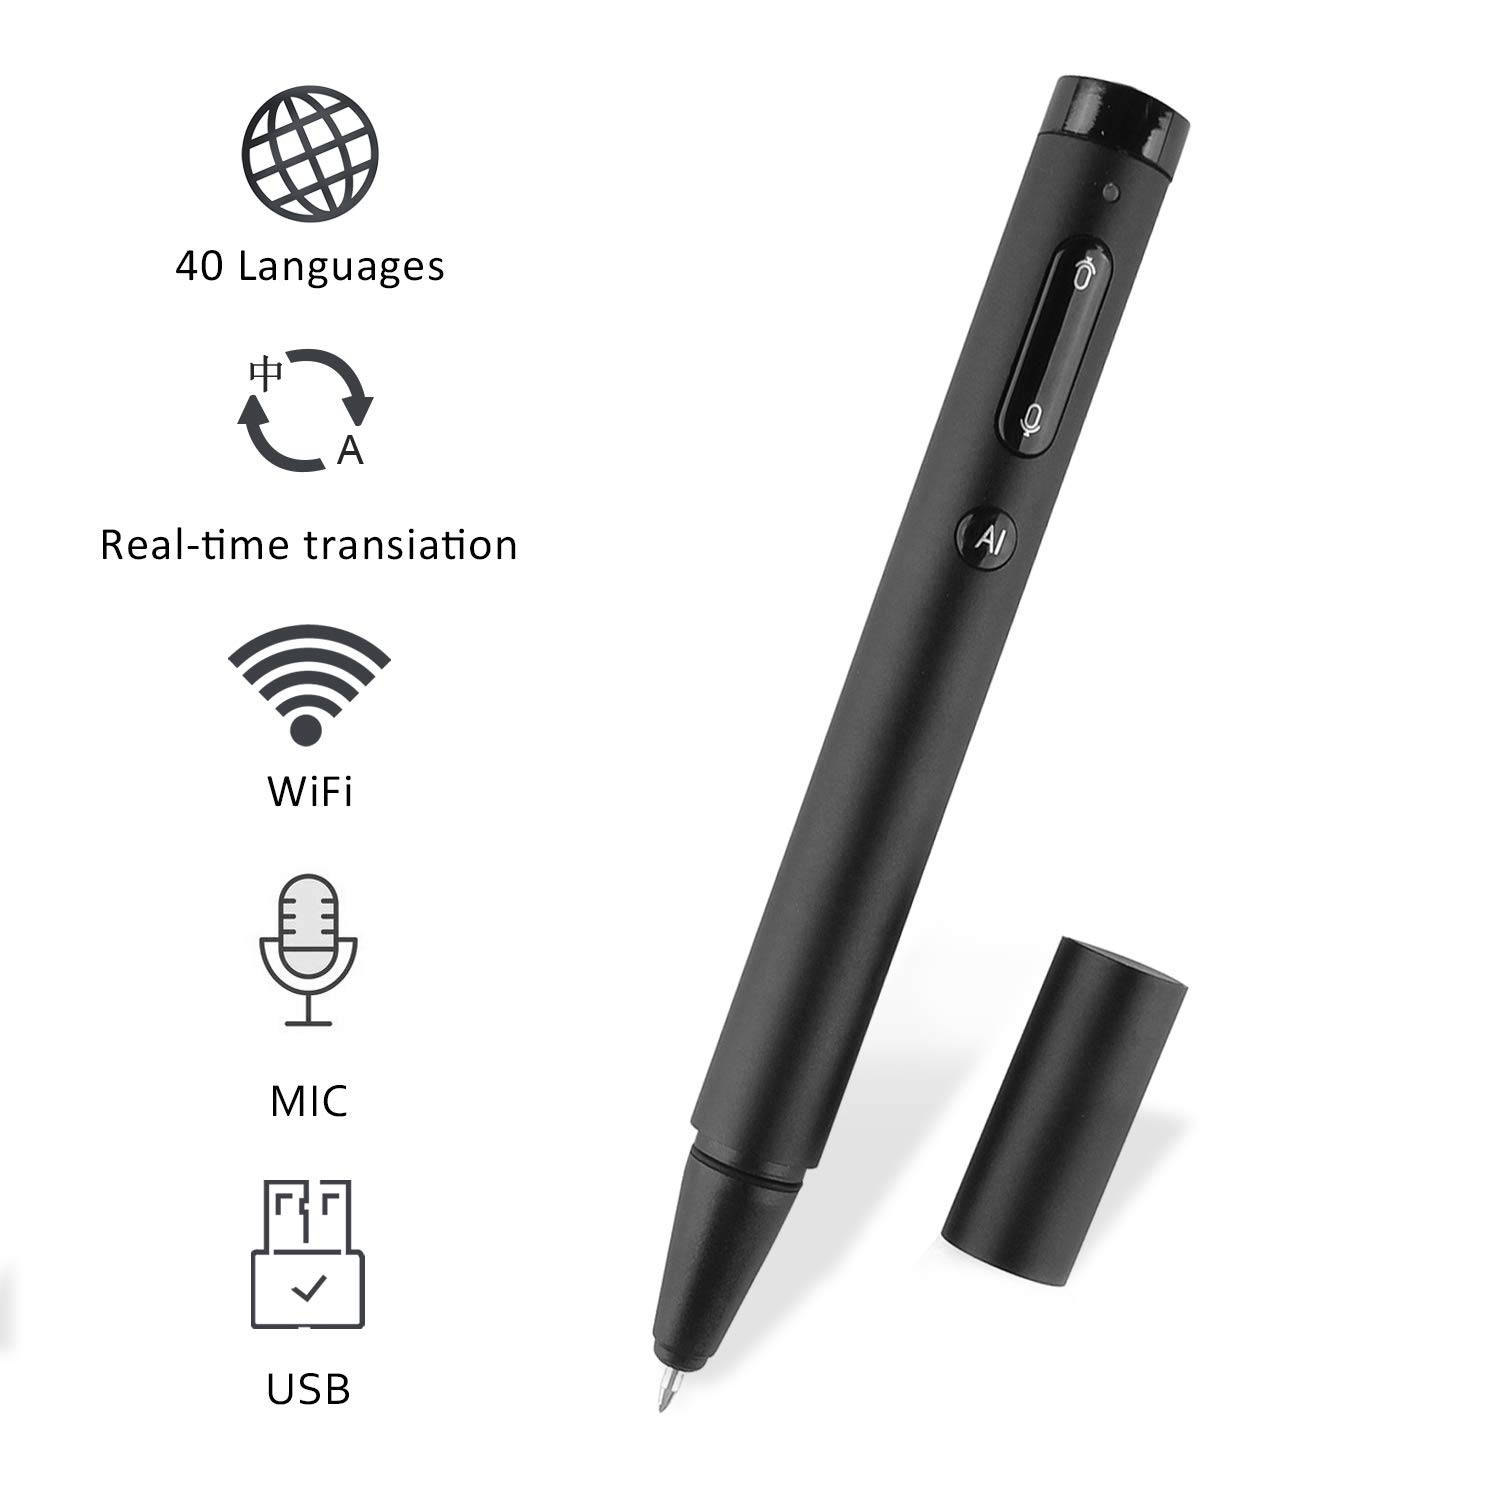 FOOING Protable Language Translator Device Smart Electronic Pocket Voice Two-Way Real Time Support All Languages Translation Handheld Interpreter for Travelling Business Learning